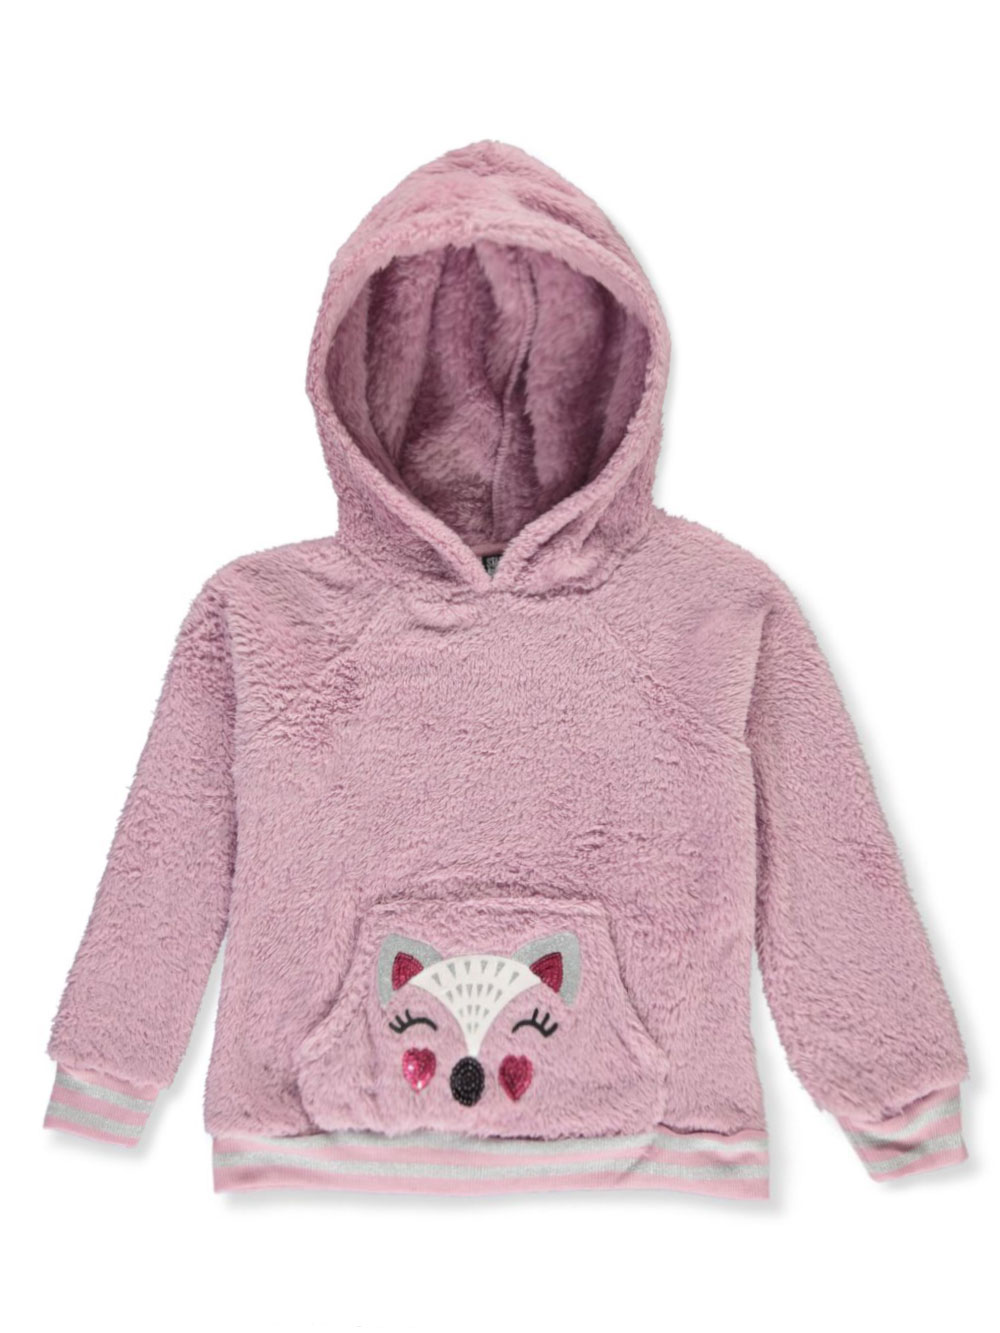 Girls White and Multicolor Hoodies